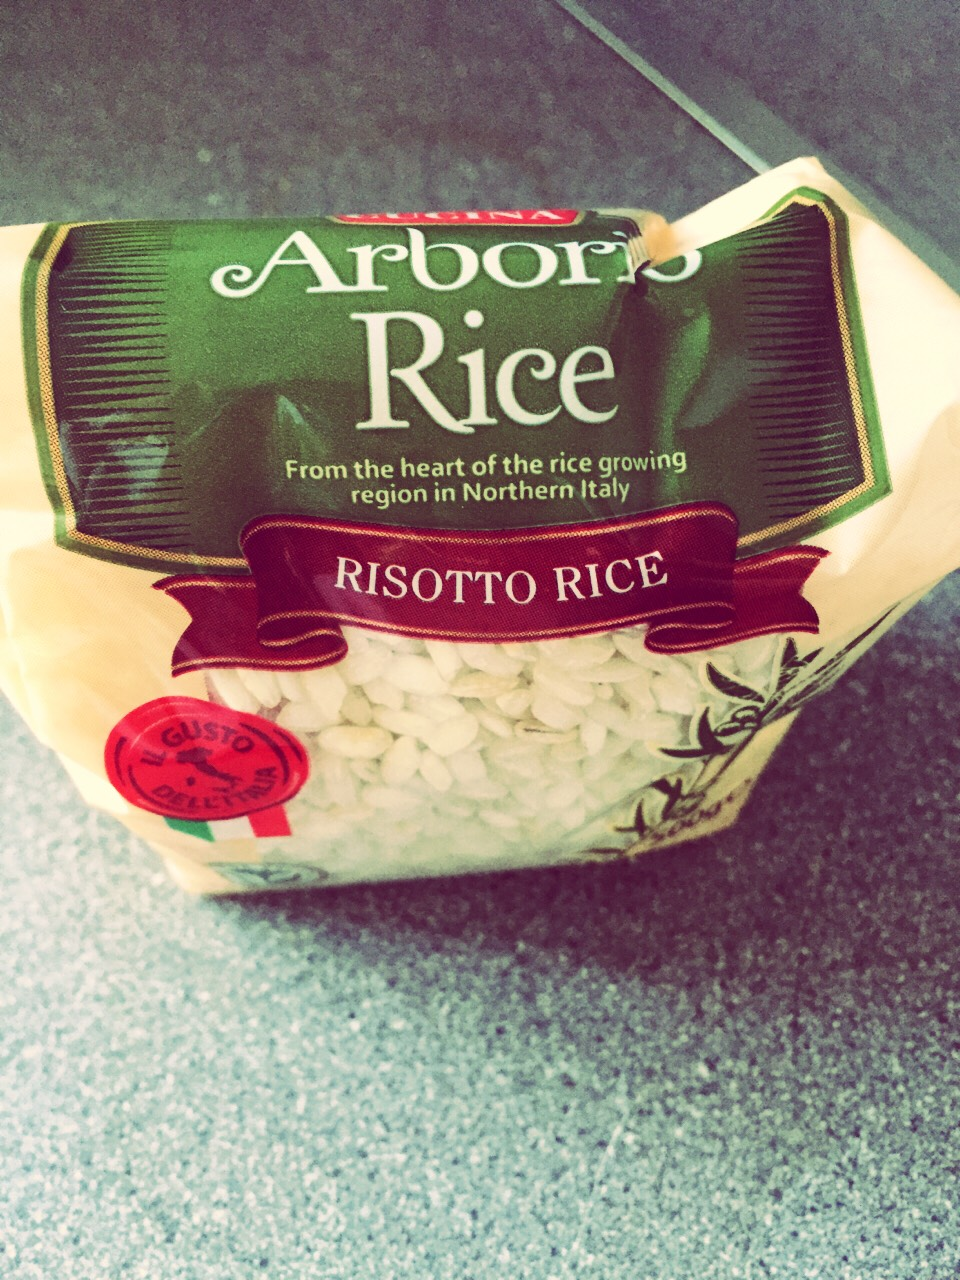 Measure out 1 cup arborio rice (enough for 2 people) and add to your stock mixture :)